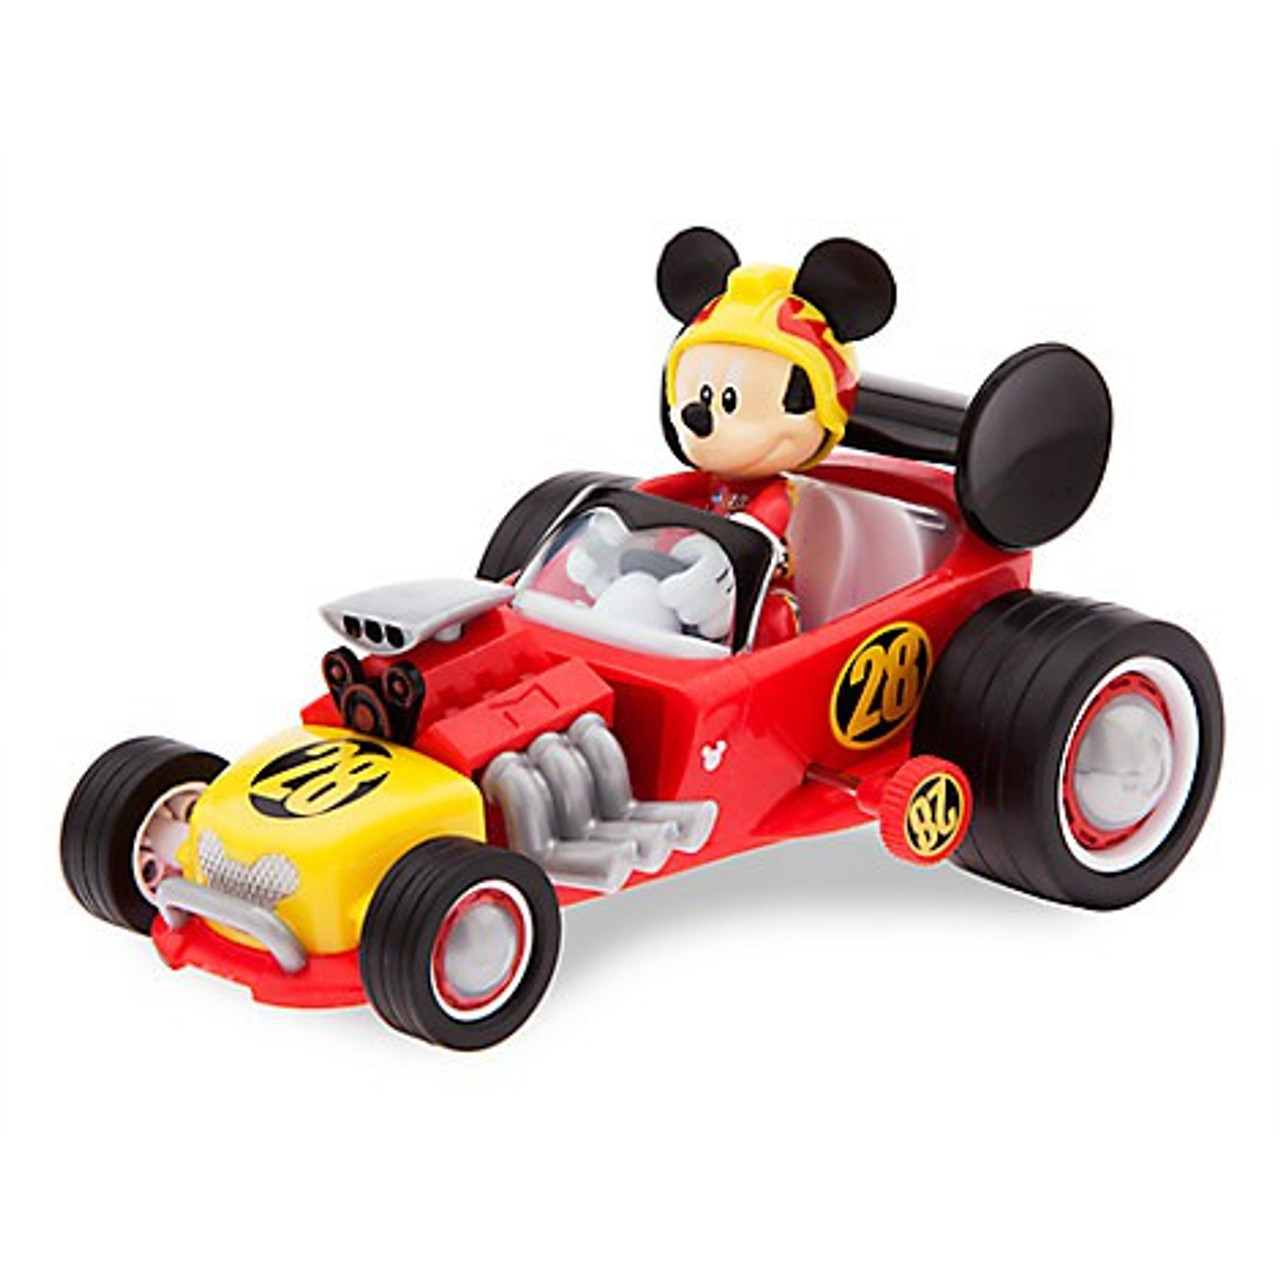 Disney Mickey Roadster Racers Mickey Mouse Wind Up Car